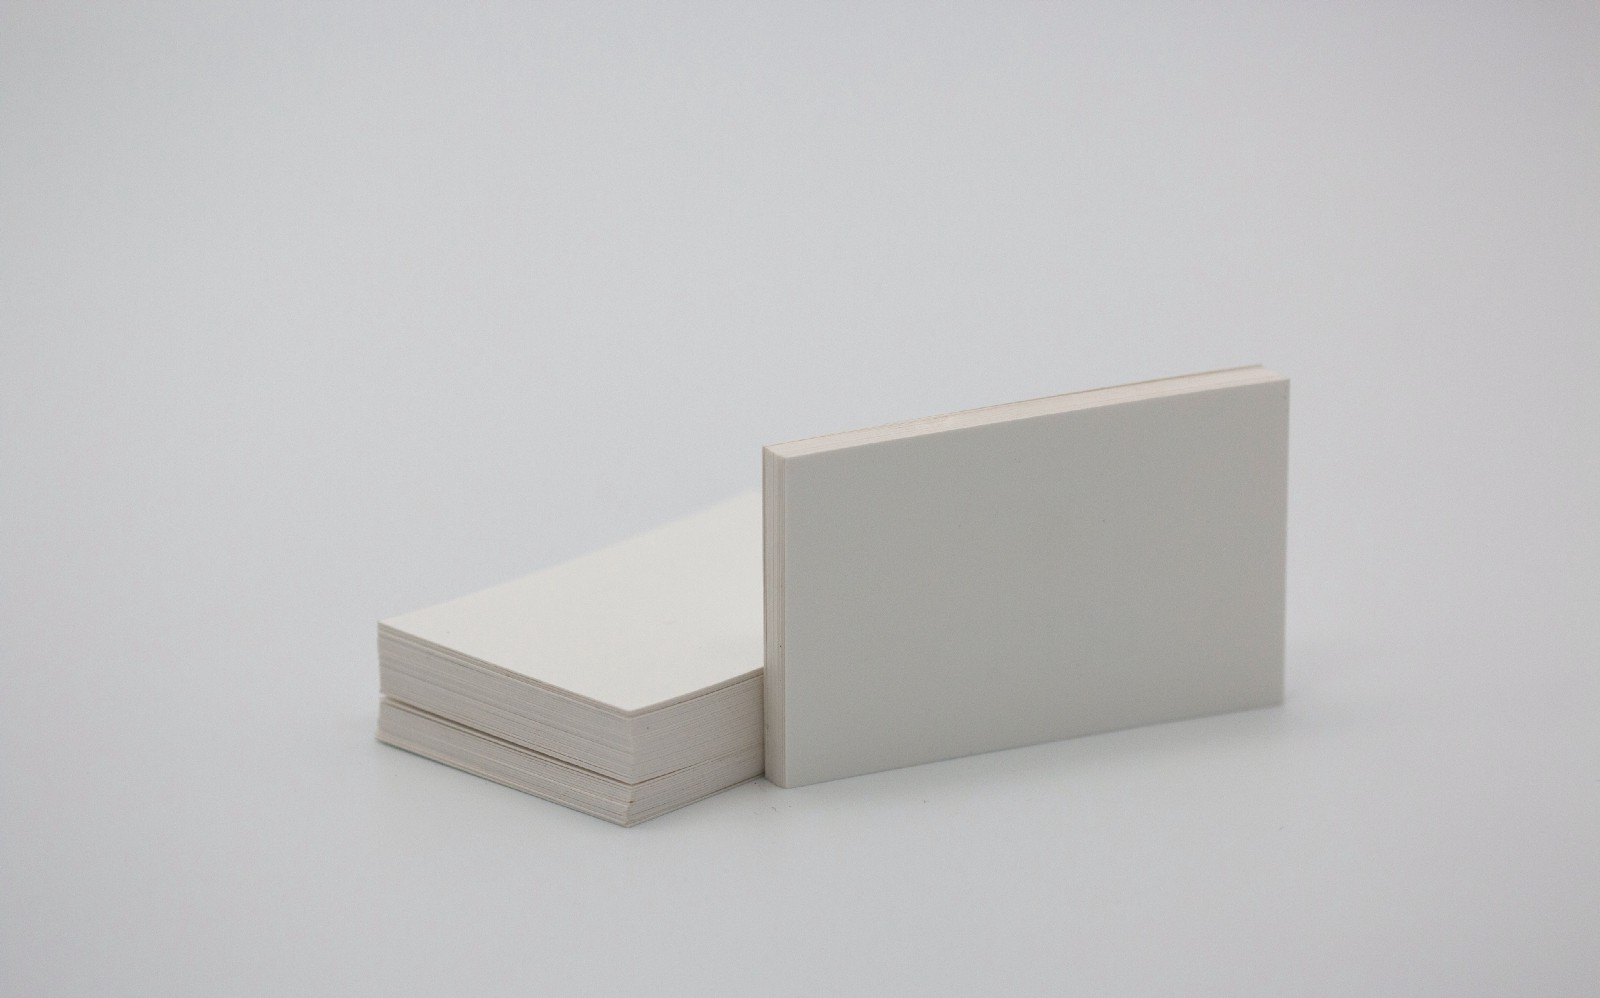 Stock photo image of a stack of blank business cards